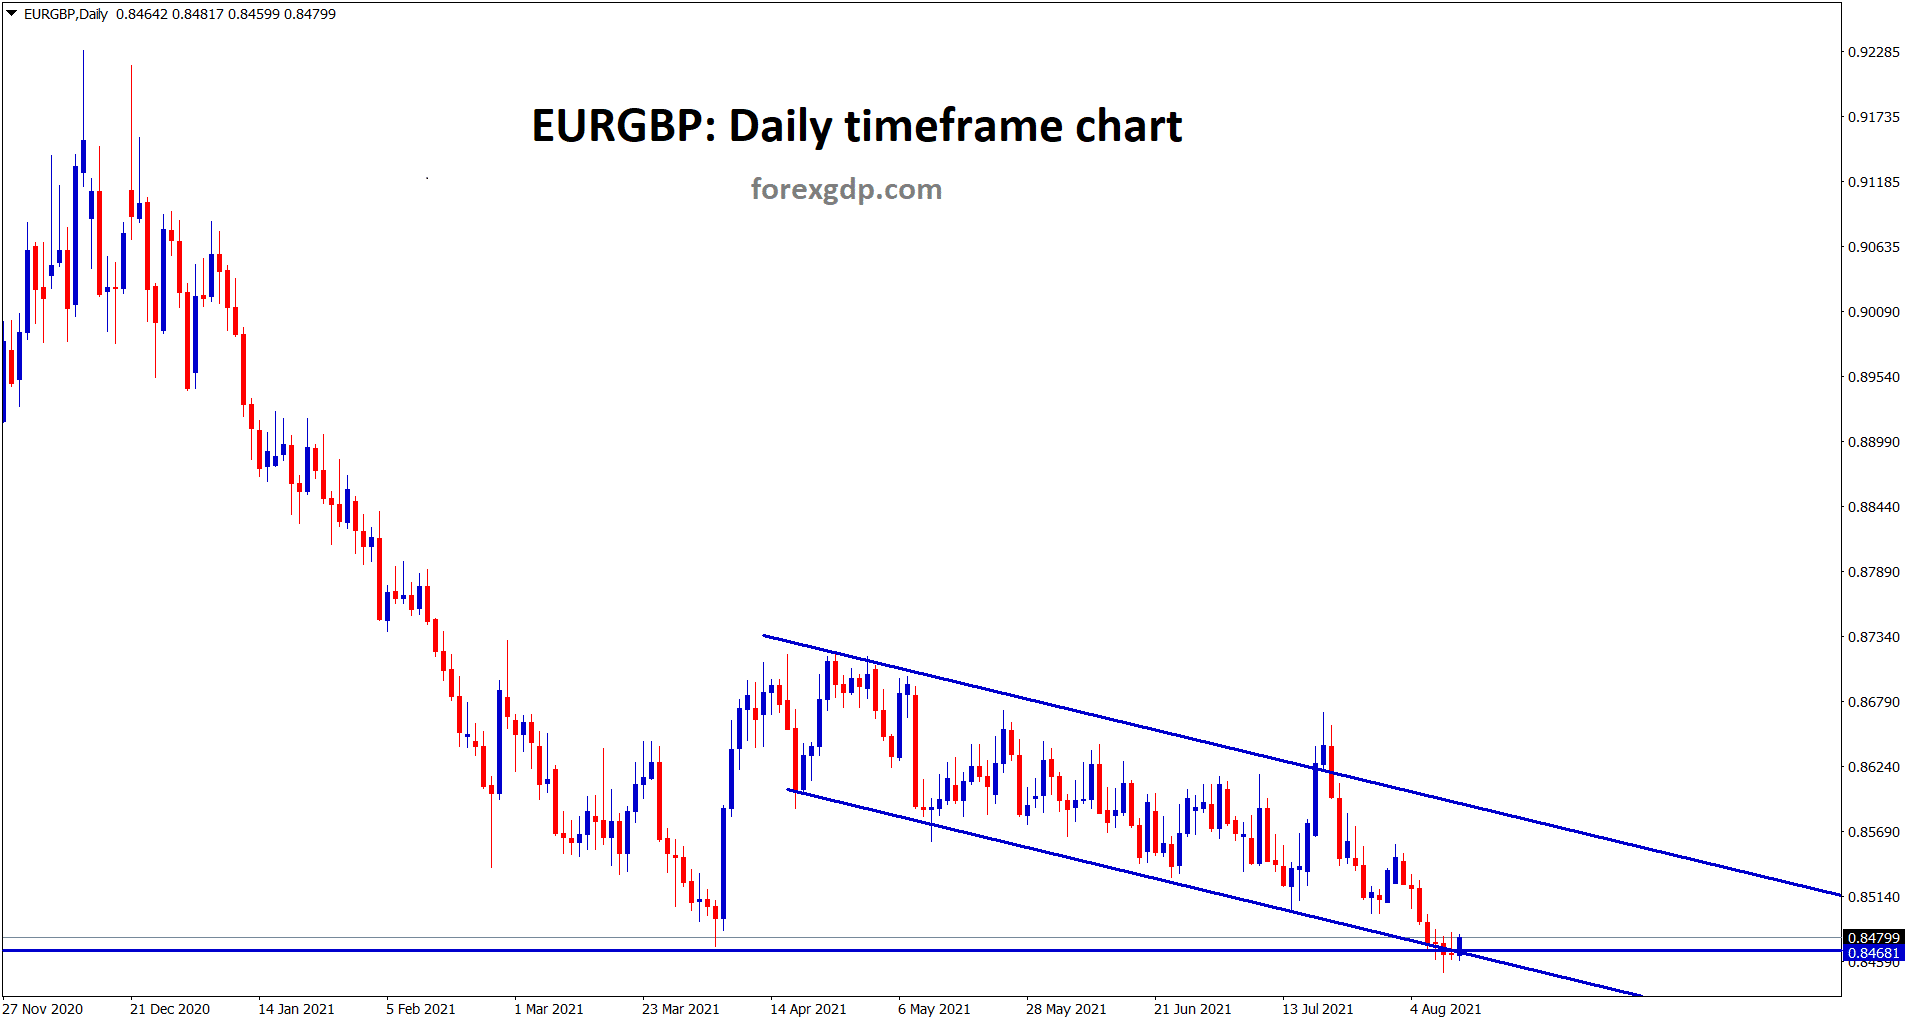 EURGBP is standing at the support and lower low level of the descending channel